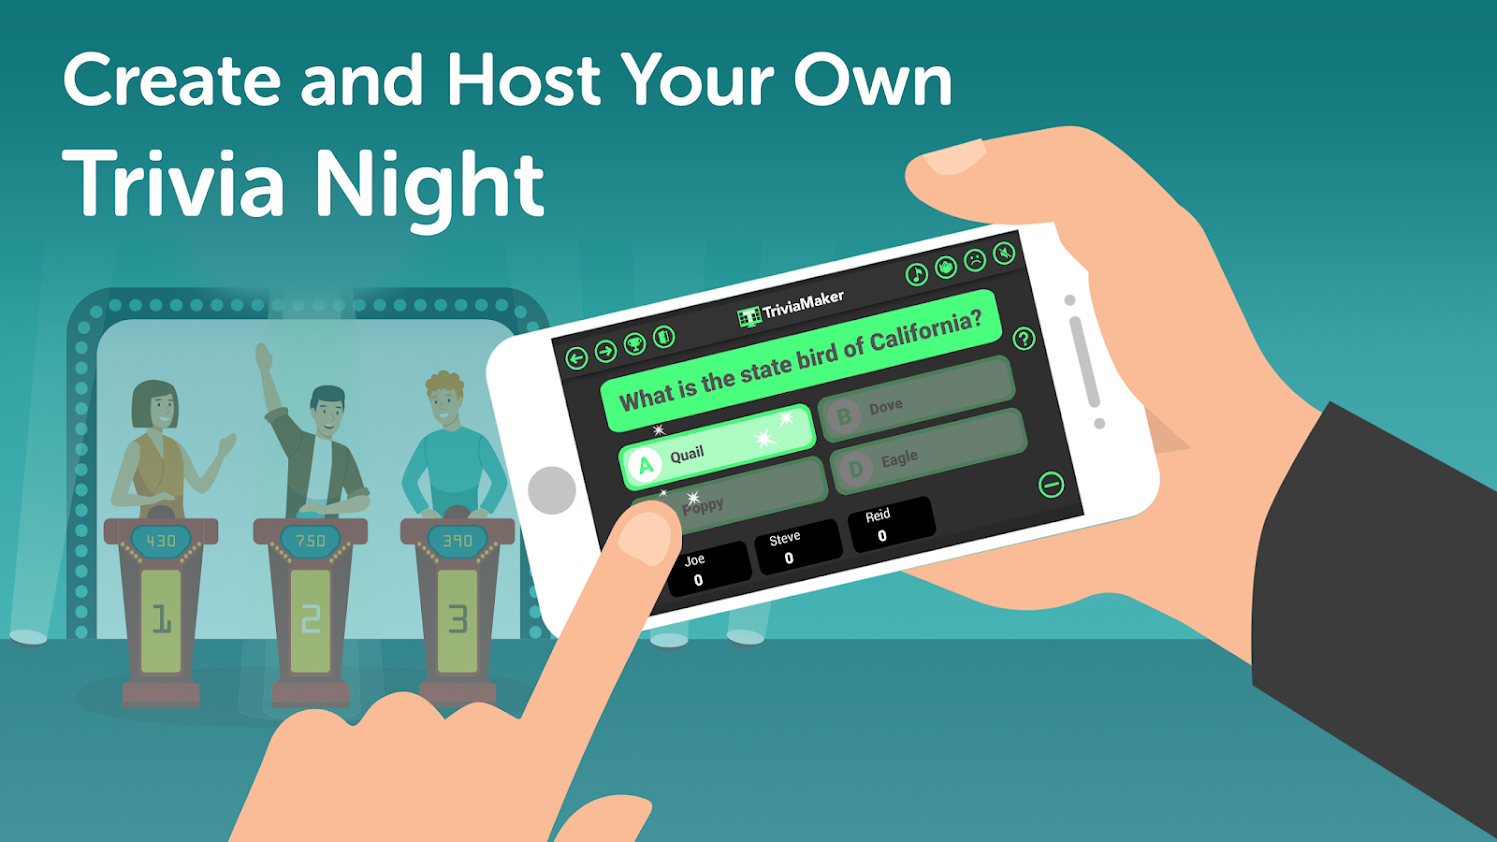 Create and host your own Trivia Night